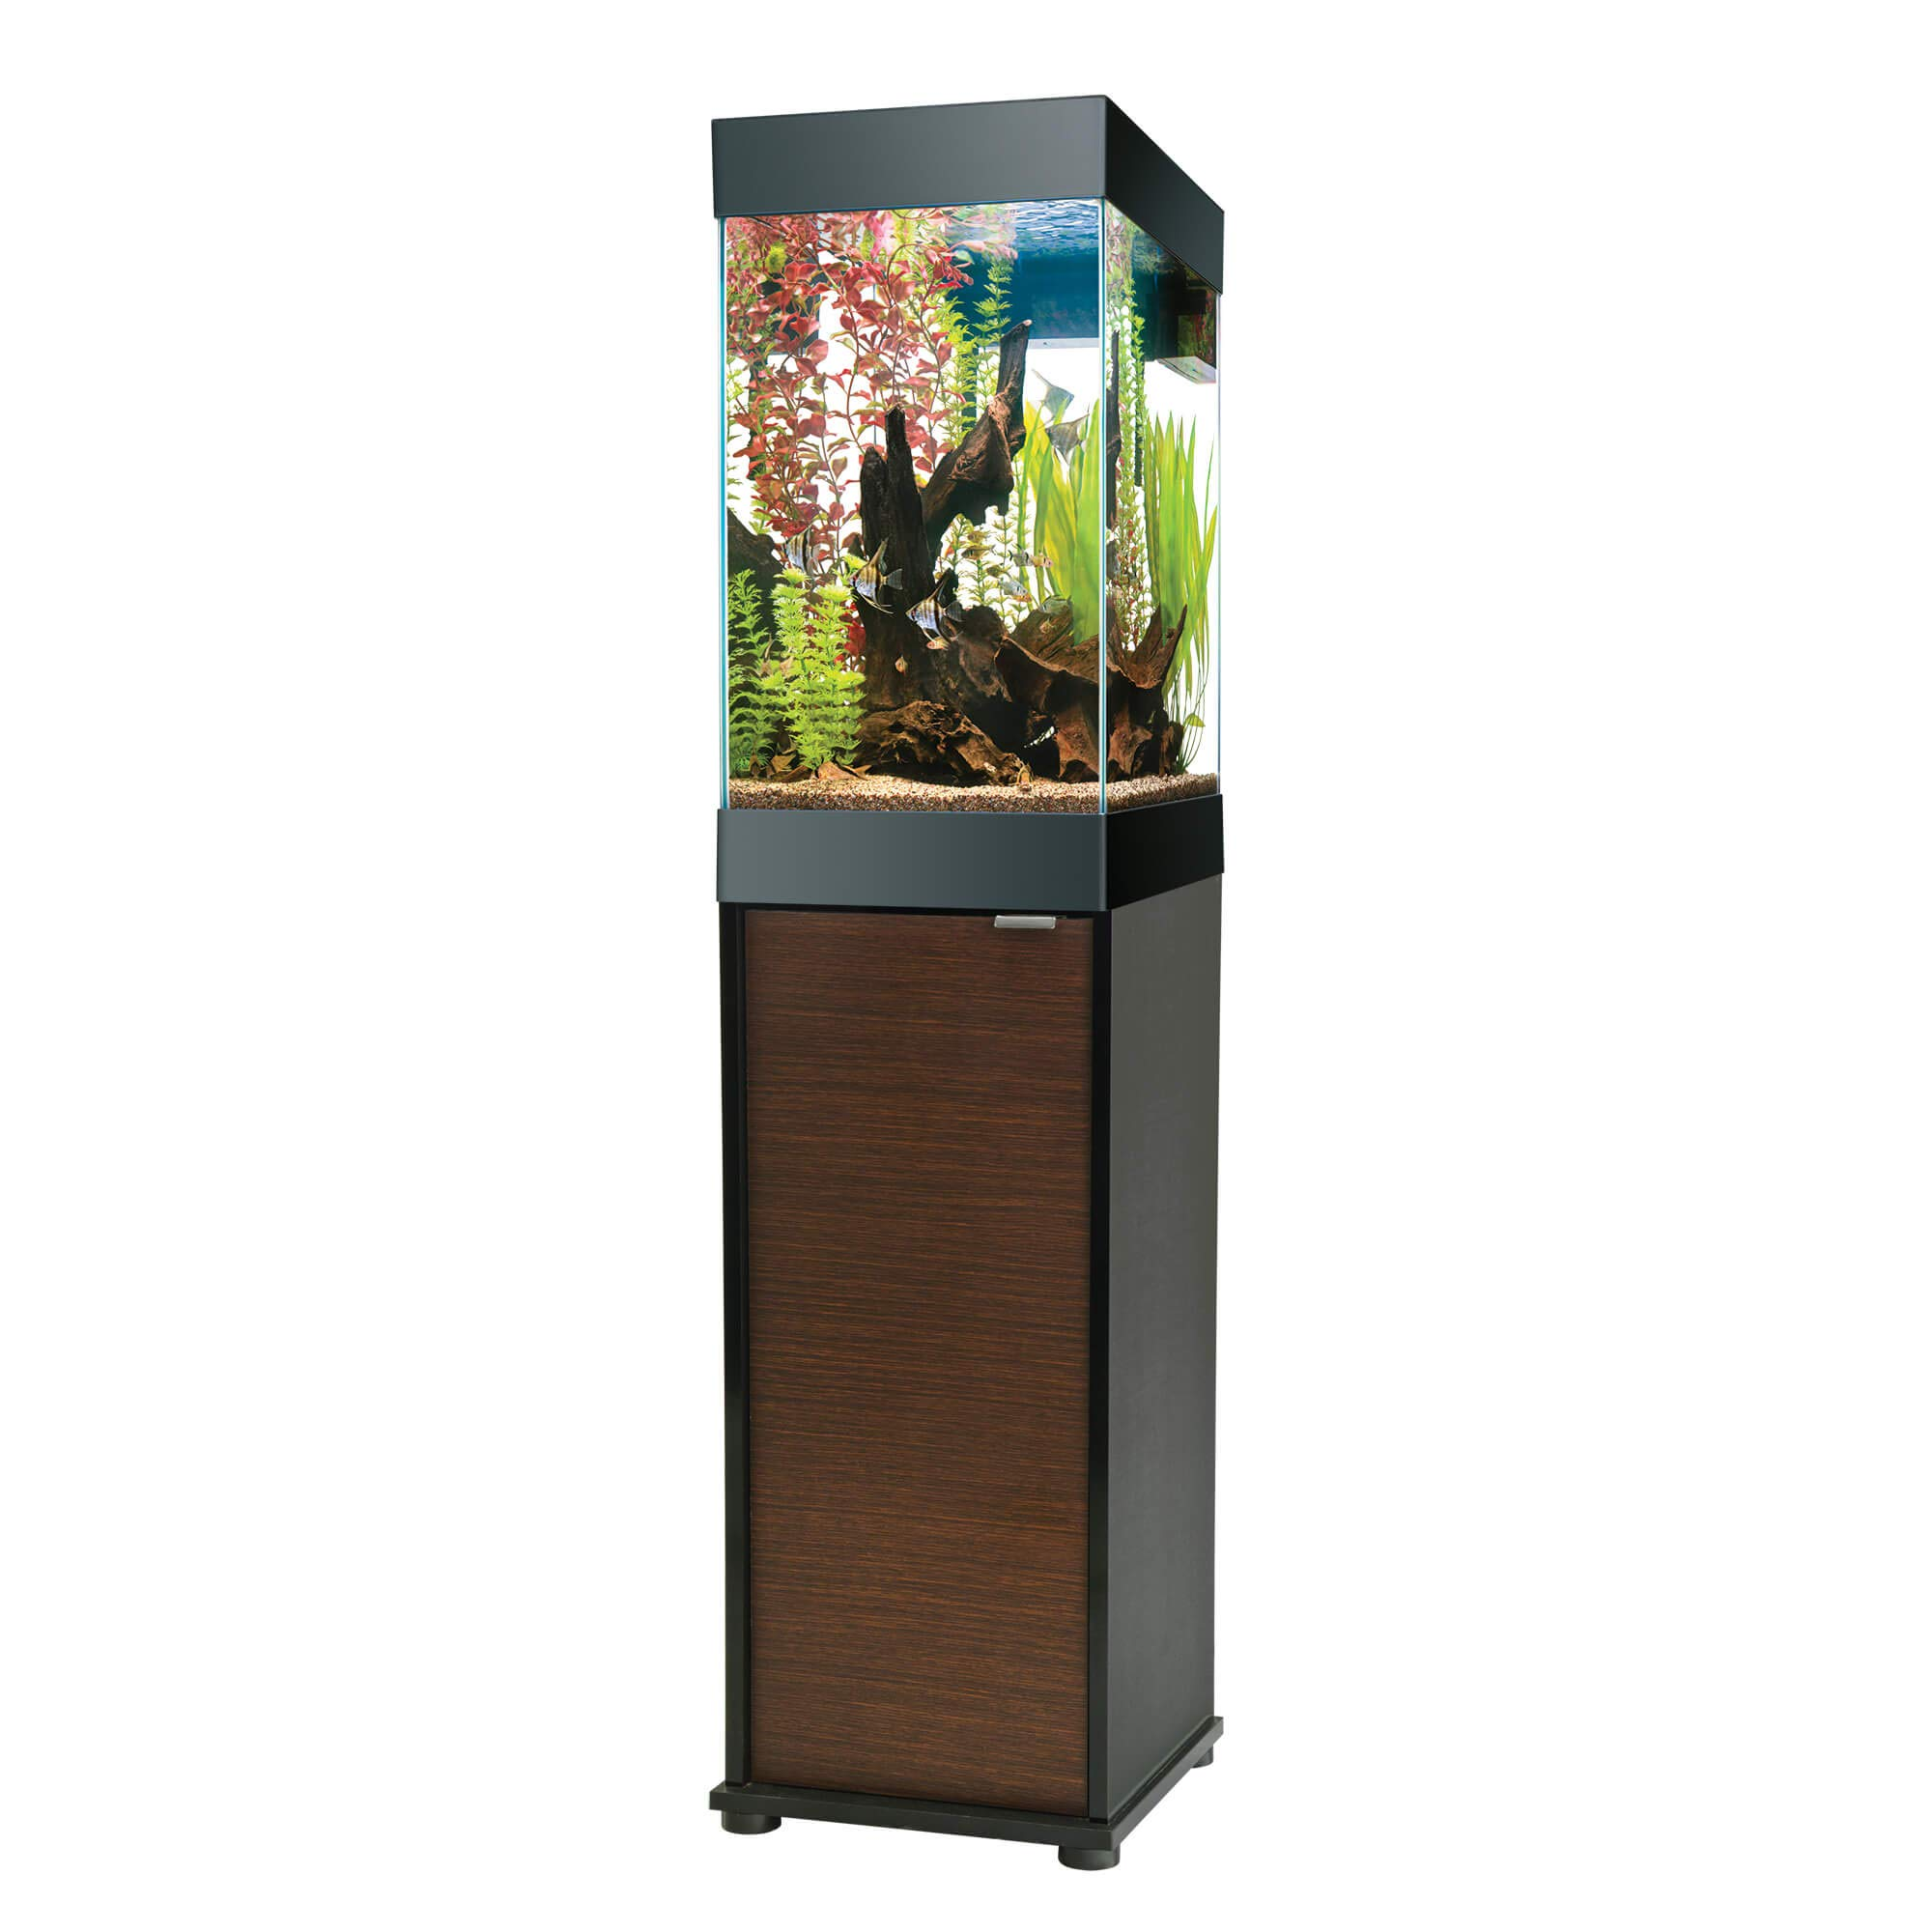 All Glass Aquarium AAG51007 15column Stand Knockdown